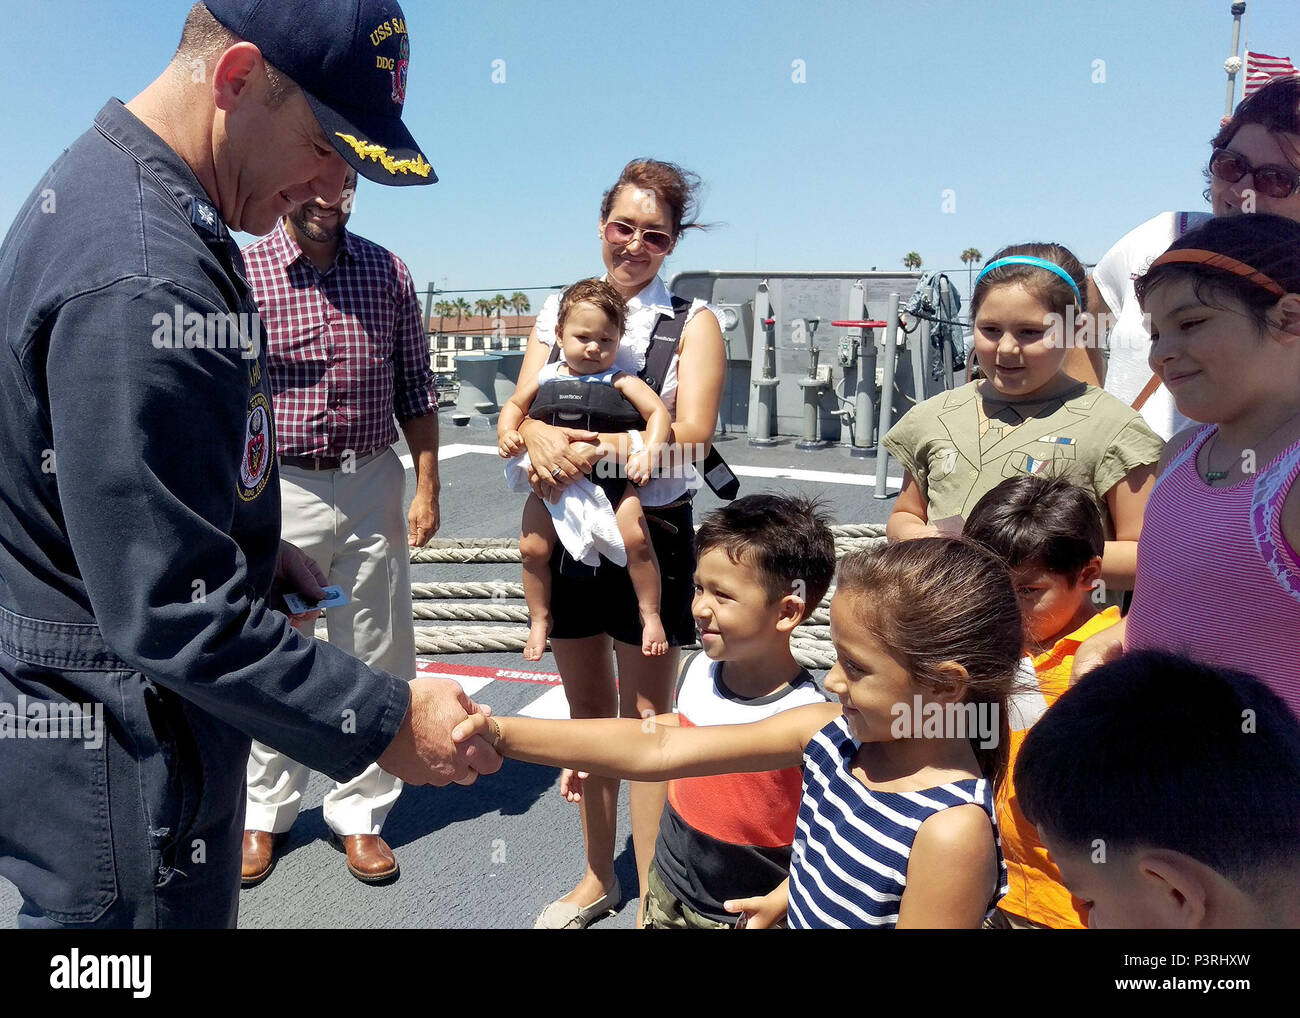 Naval Information Forces West provided a tour of the Naval Base San Diego to local students and their parents July 22.  The families belong to the Marlow B. Martinez Foundation, a local non-profit organization supporting disadvantaged children. Cmdr Patrick H. O'Mahoney the Commanding Officer of the USS Sampson DDG-102 took time to meet with the kids and pass out stickers. (US Navy photo by LCDR Henry A. Martinez / released) - Stock Image